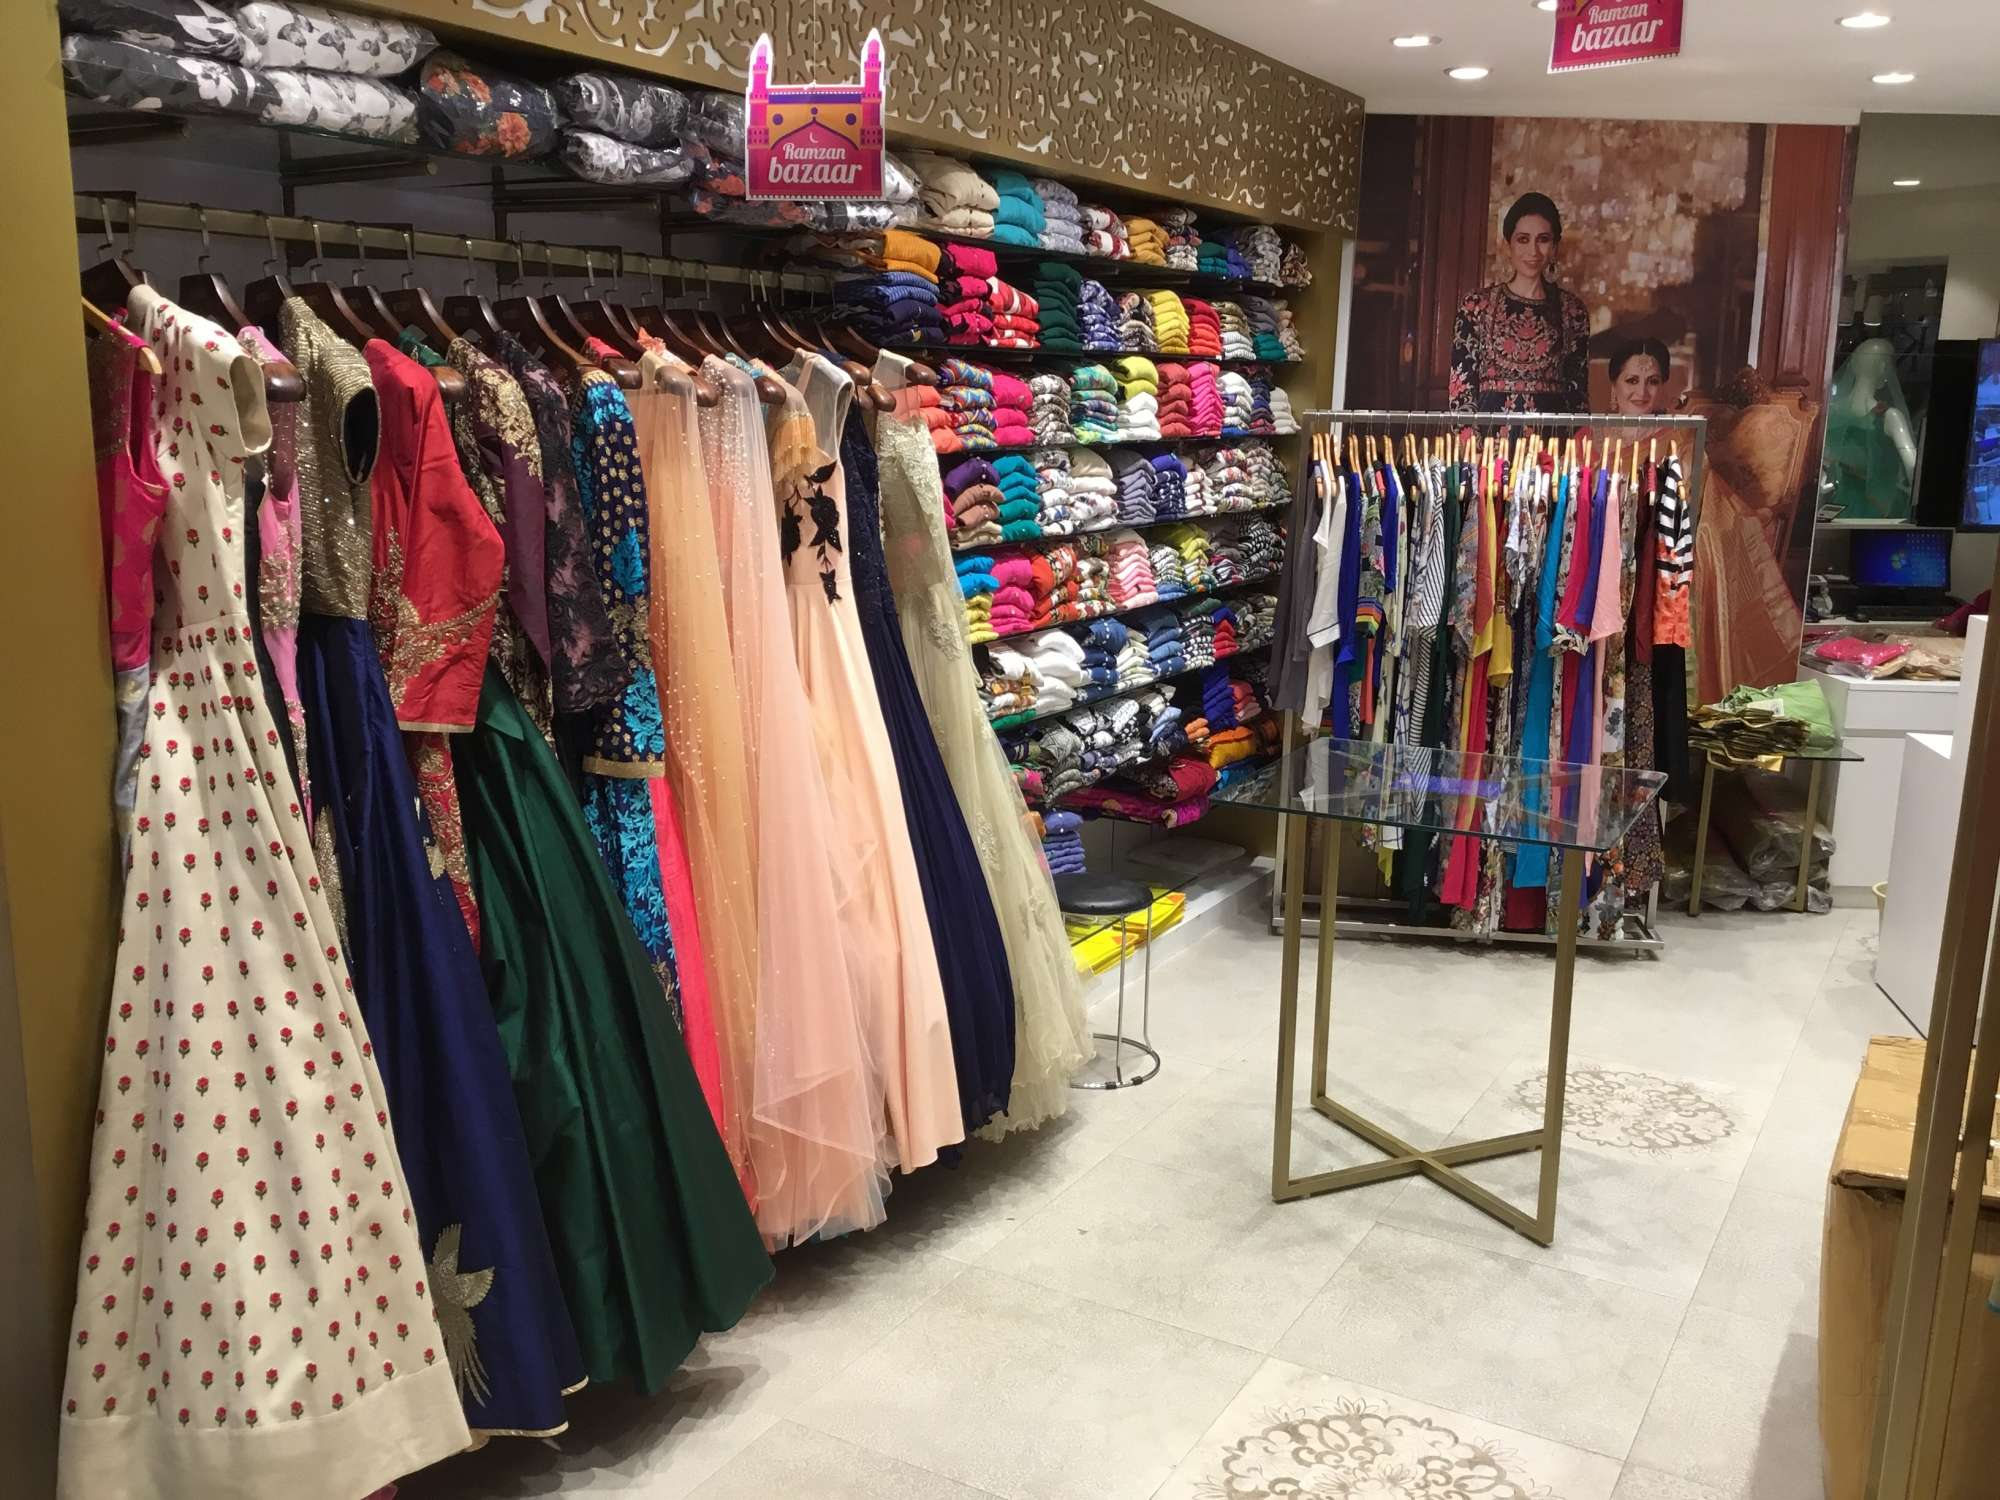 Find list of Neerus Stores in Anna Nagar - Neerus Outlets Chennai